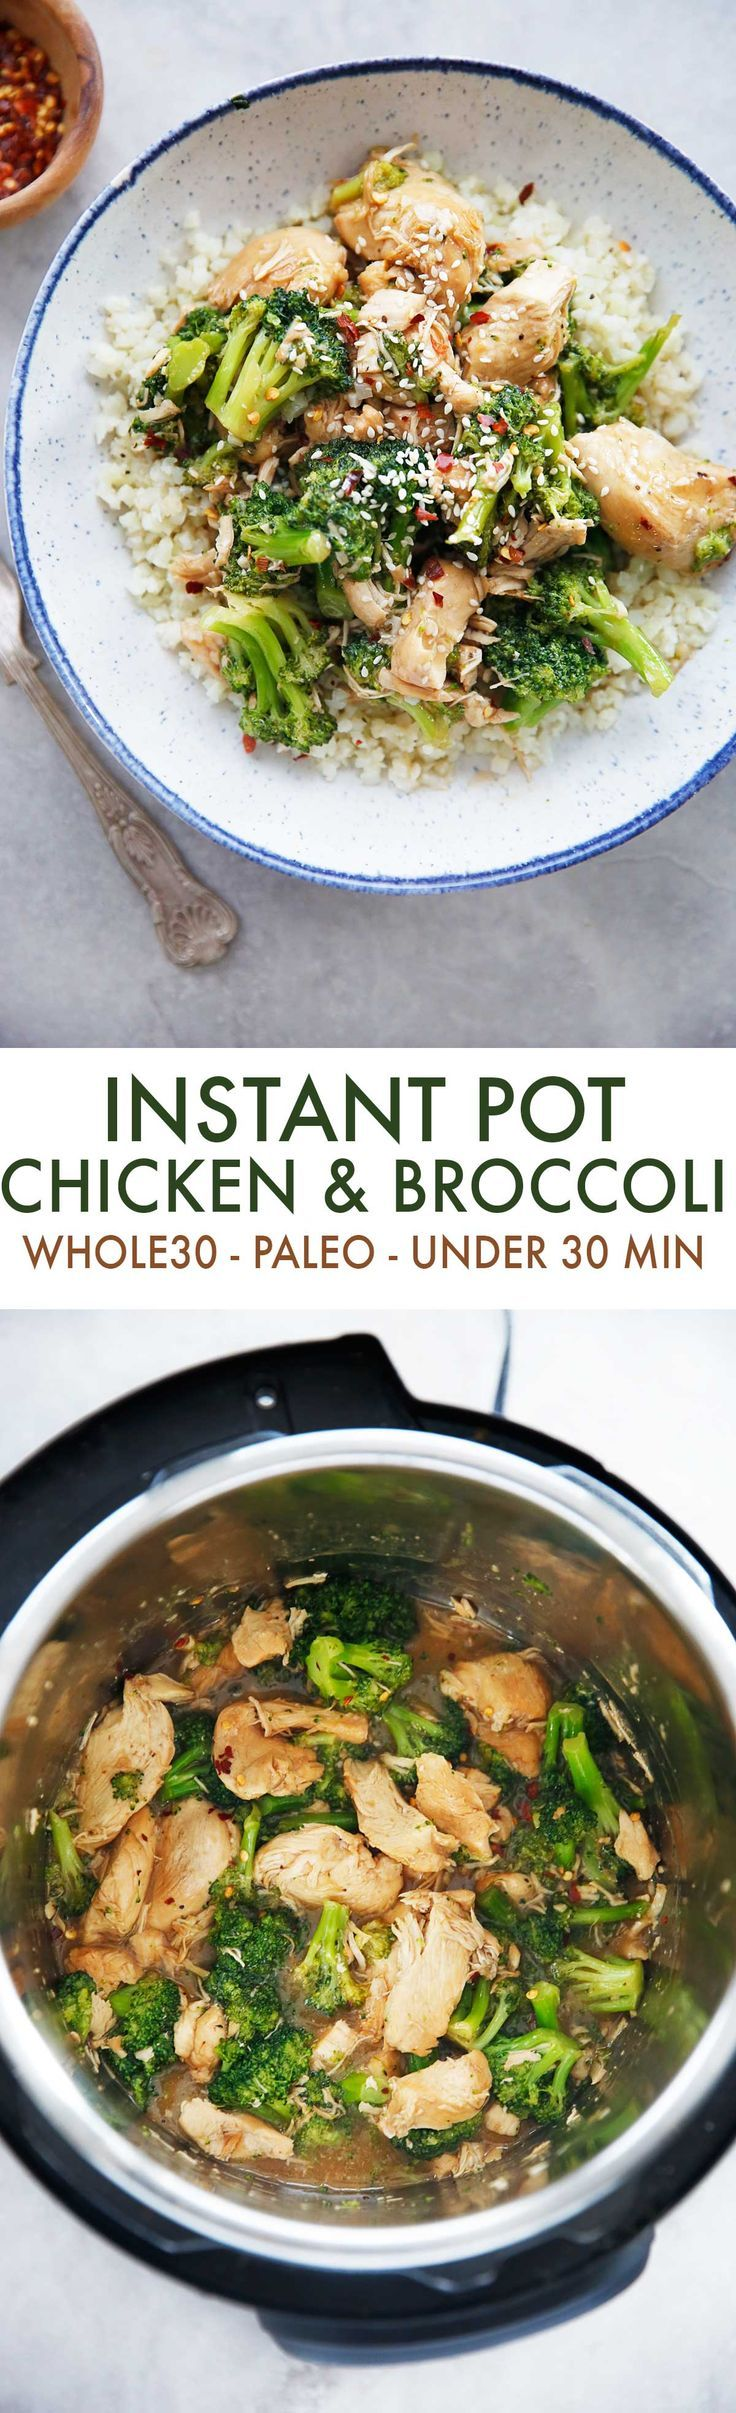 Paleo Chicken and Broccoli (Instant Pot & Under 30 Minutes) | Posted By: DebbieNet.com